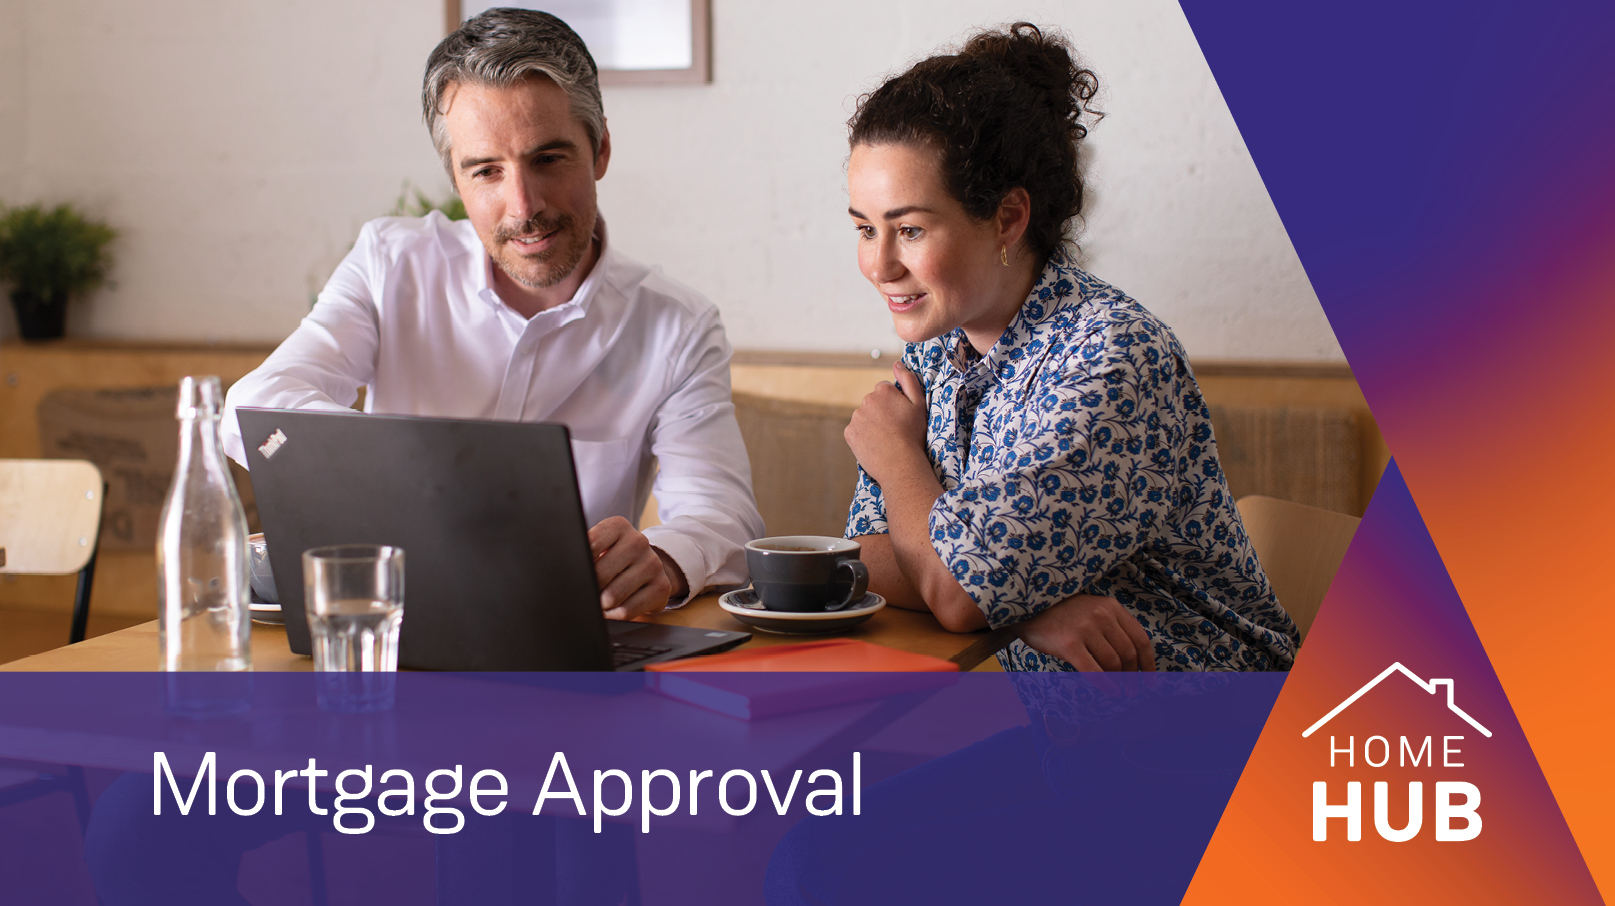 Mortgage Approval: When you're ready to apply, we're with you every step of the way